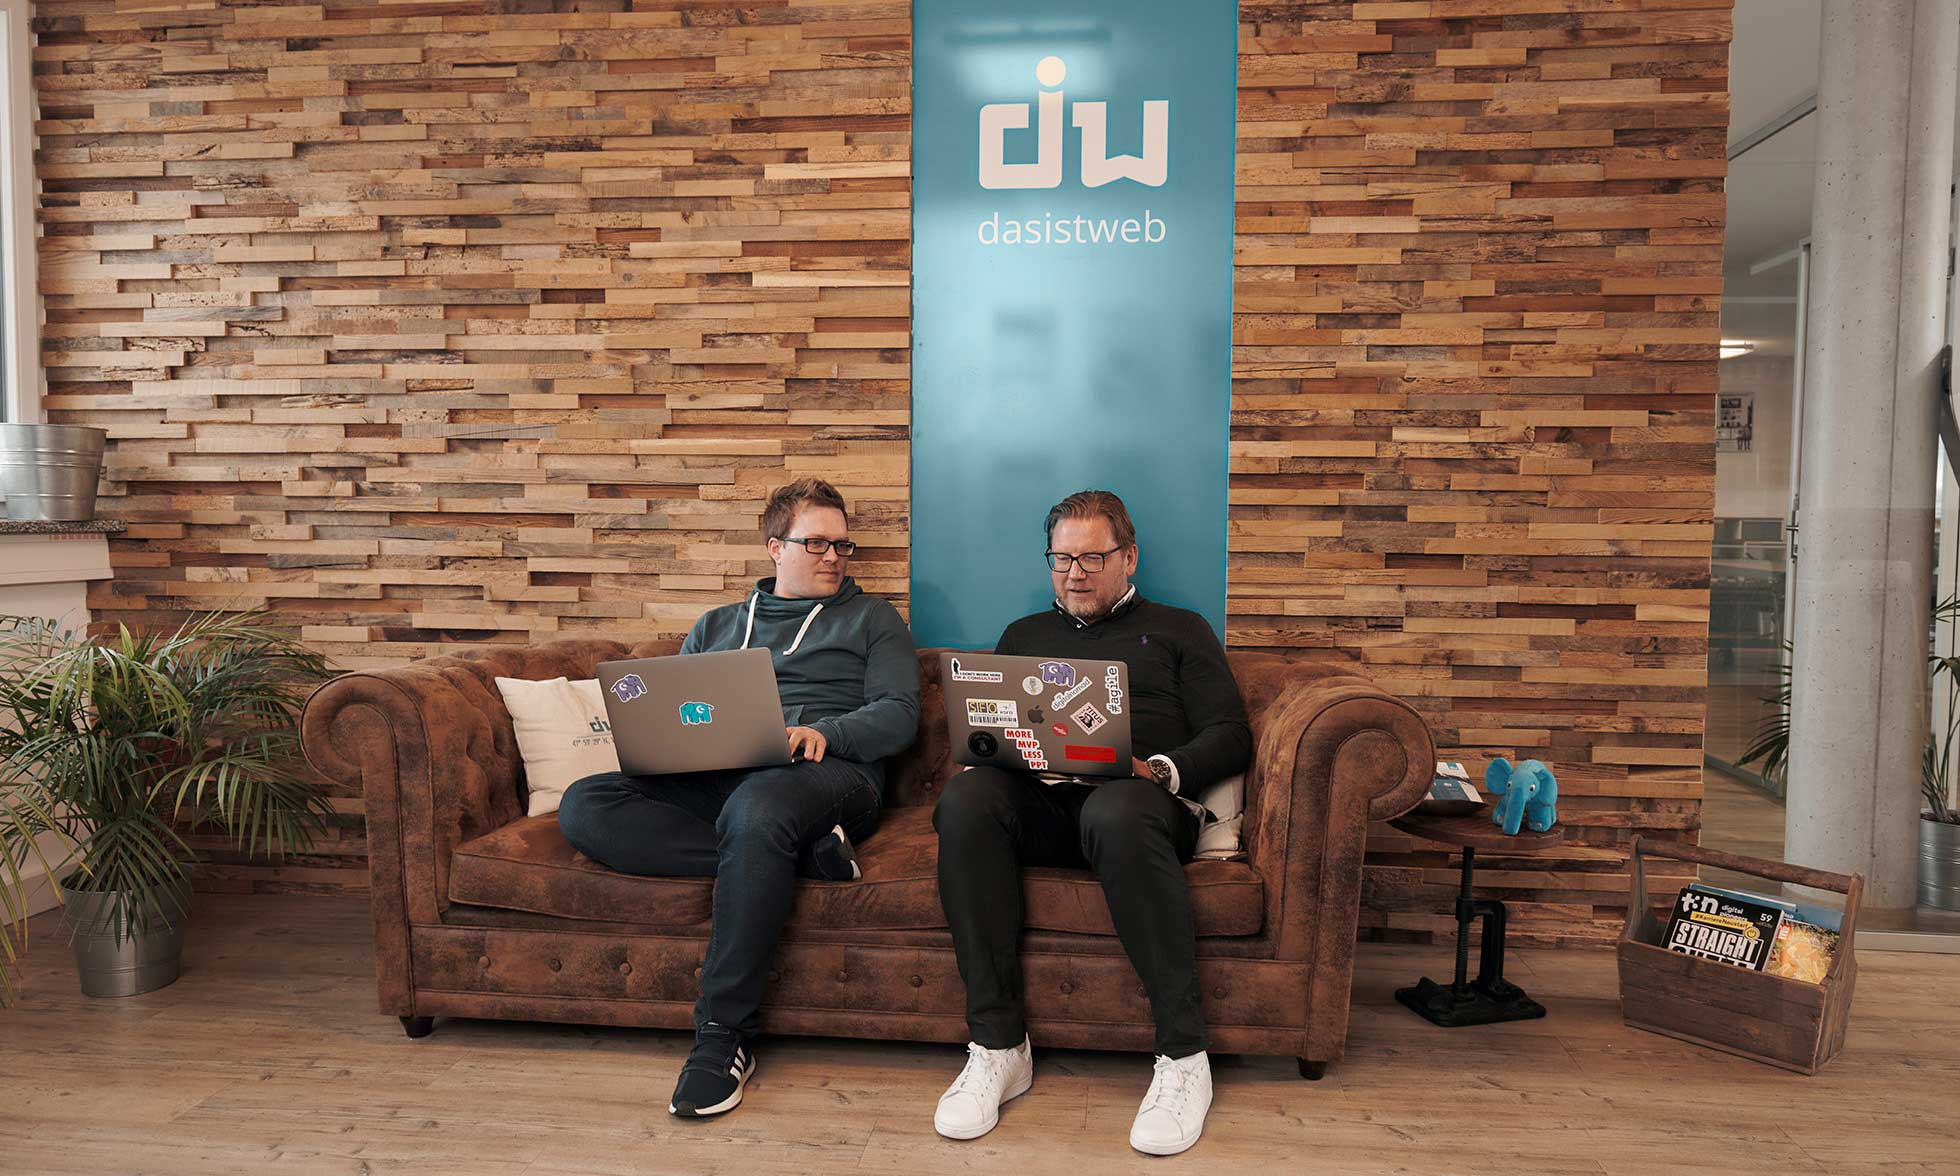 Martin Weinmayr and Andreas Rieger, CEO and Head of Sales at dasistweb sit on a sofa in their office. They are holding a laptop.